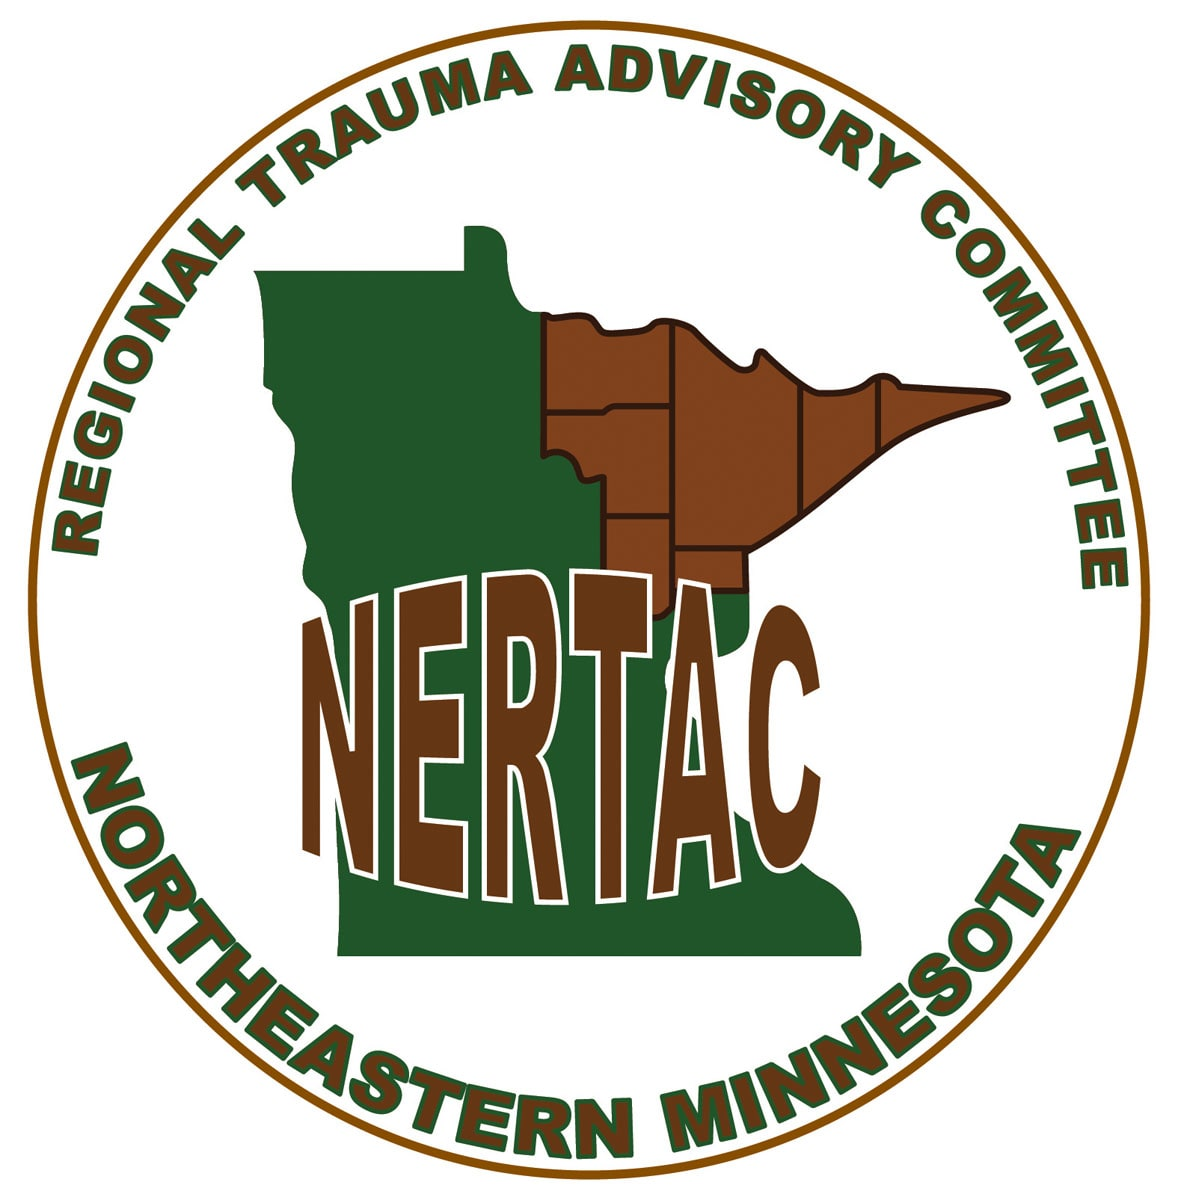 Northeastern Minnesota Regional Trauma Advisory Committee logo